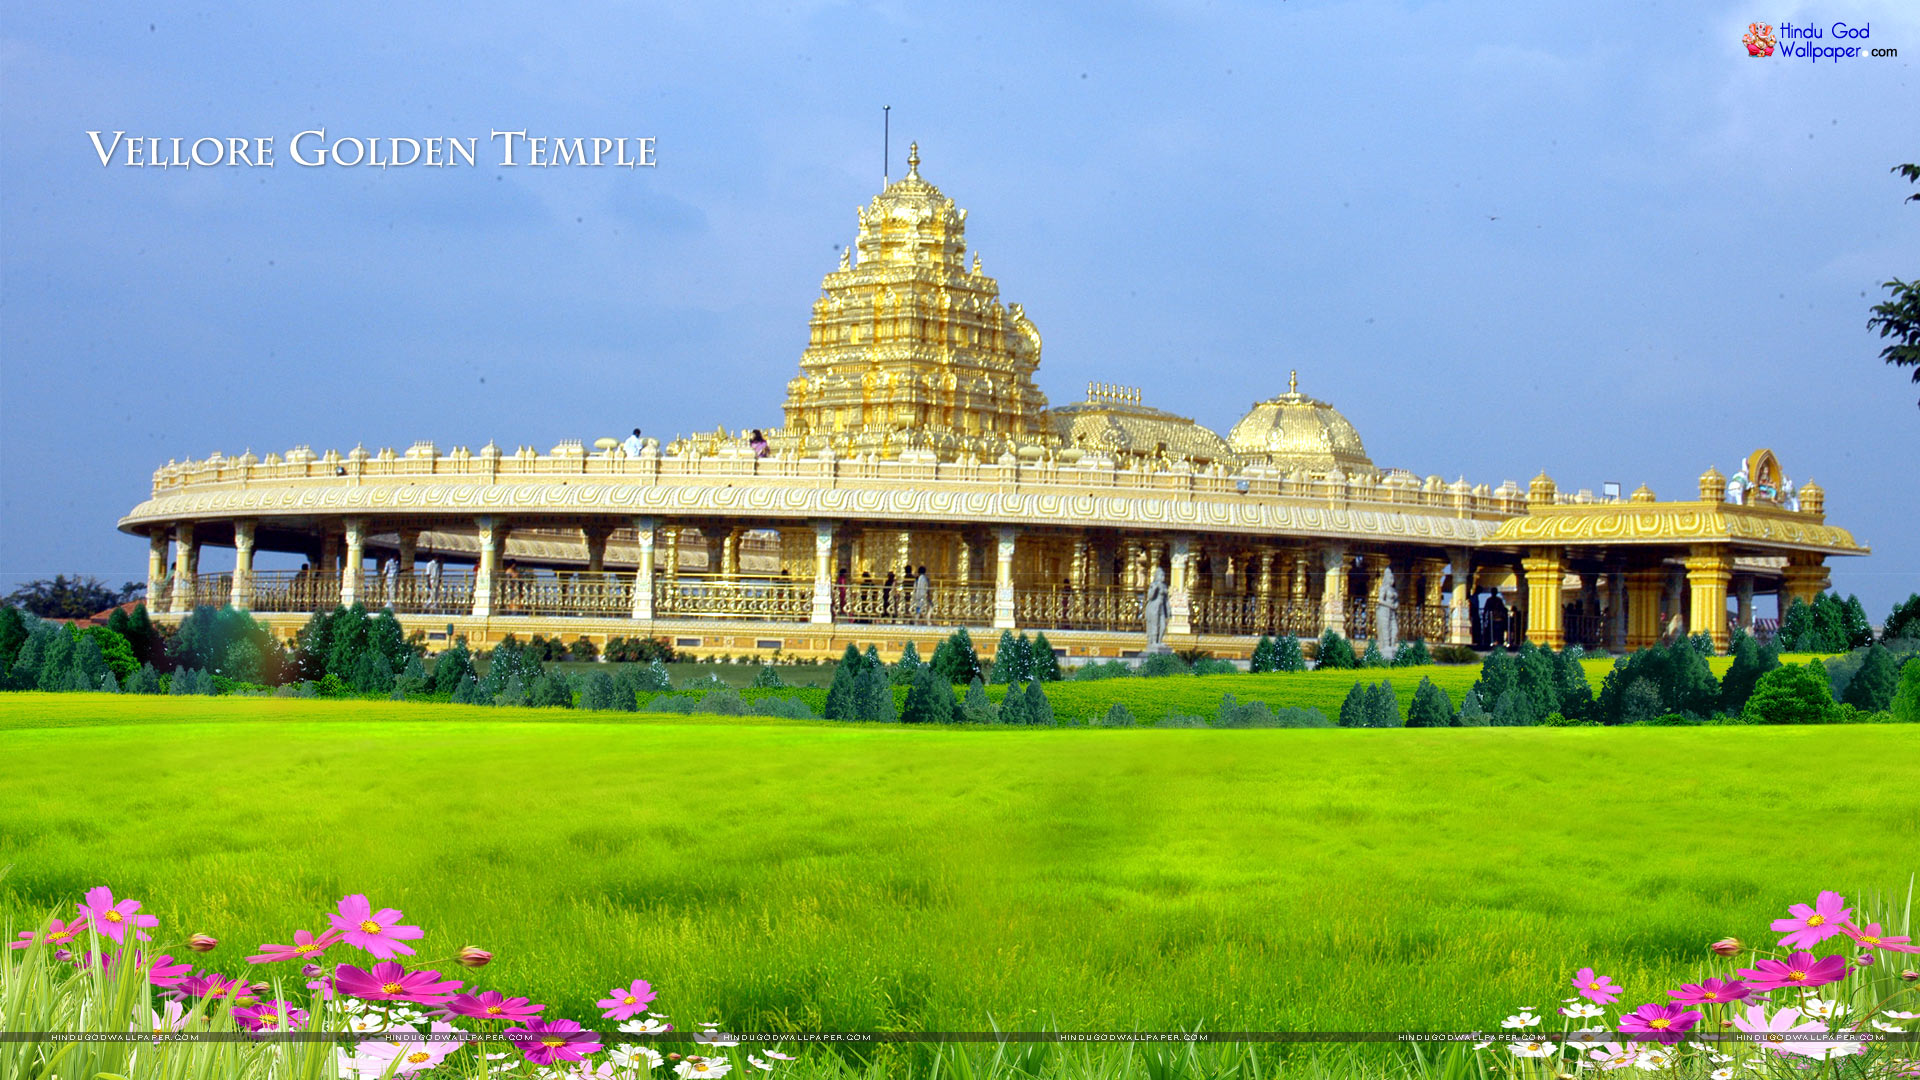 vellore golden temple wallpapers, photos, images download